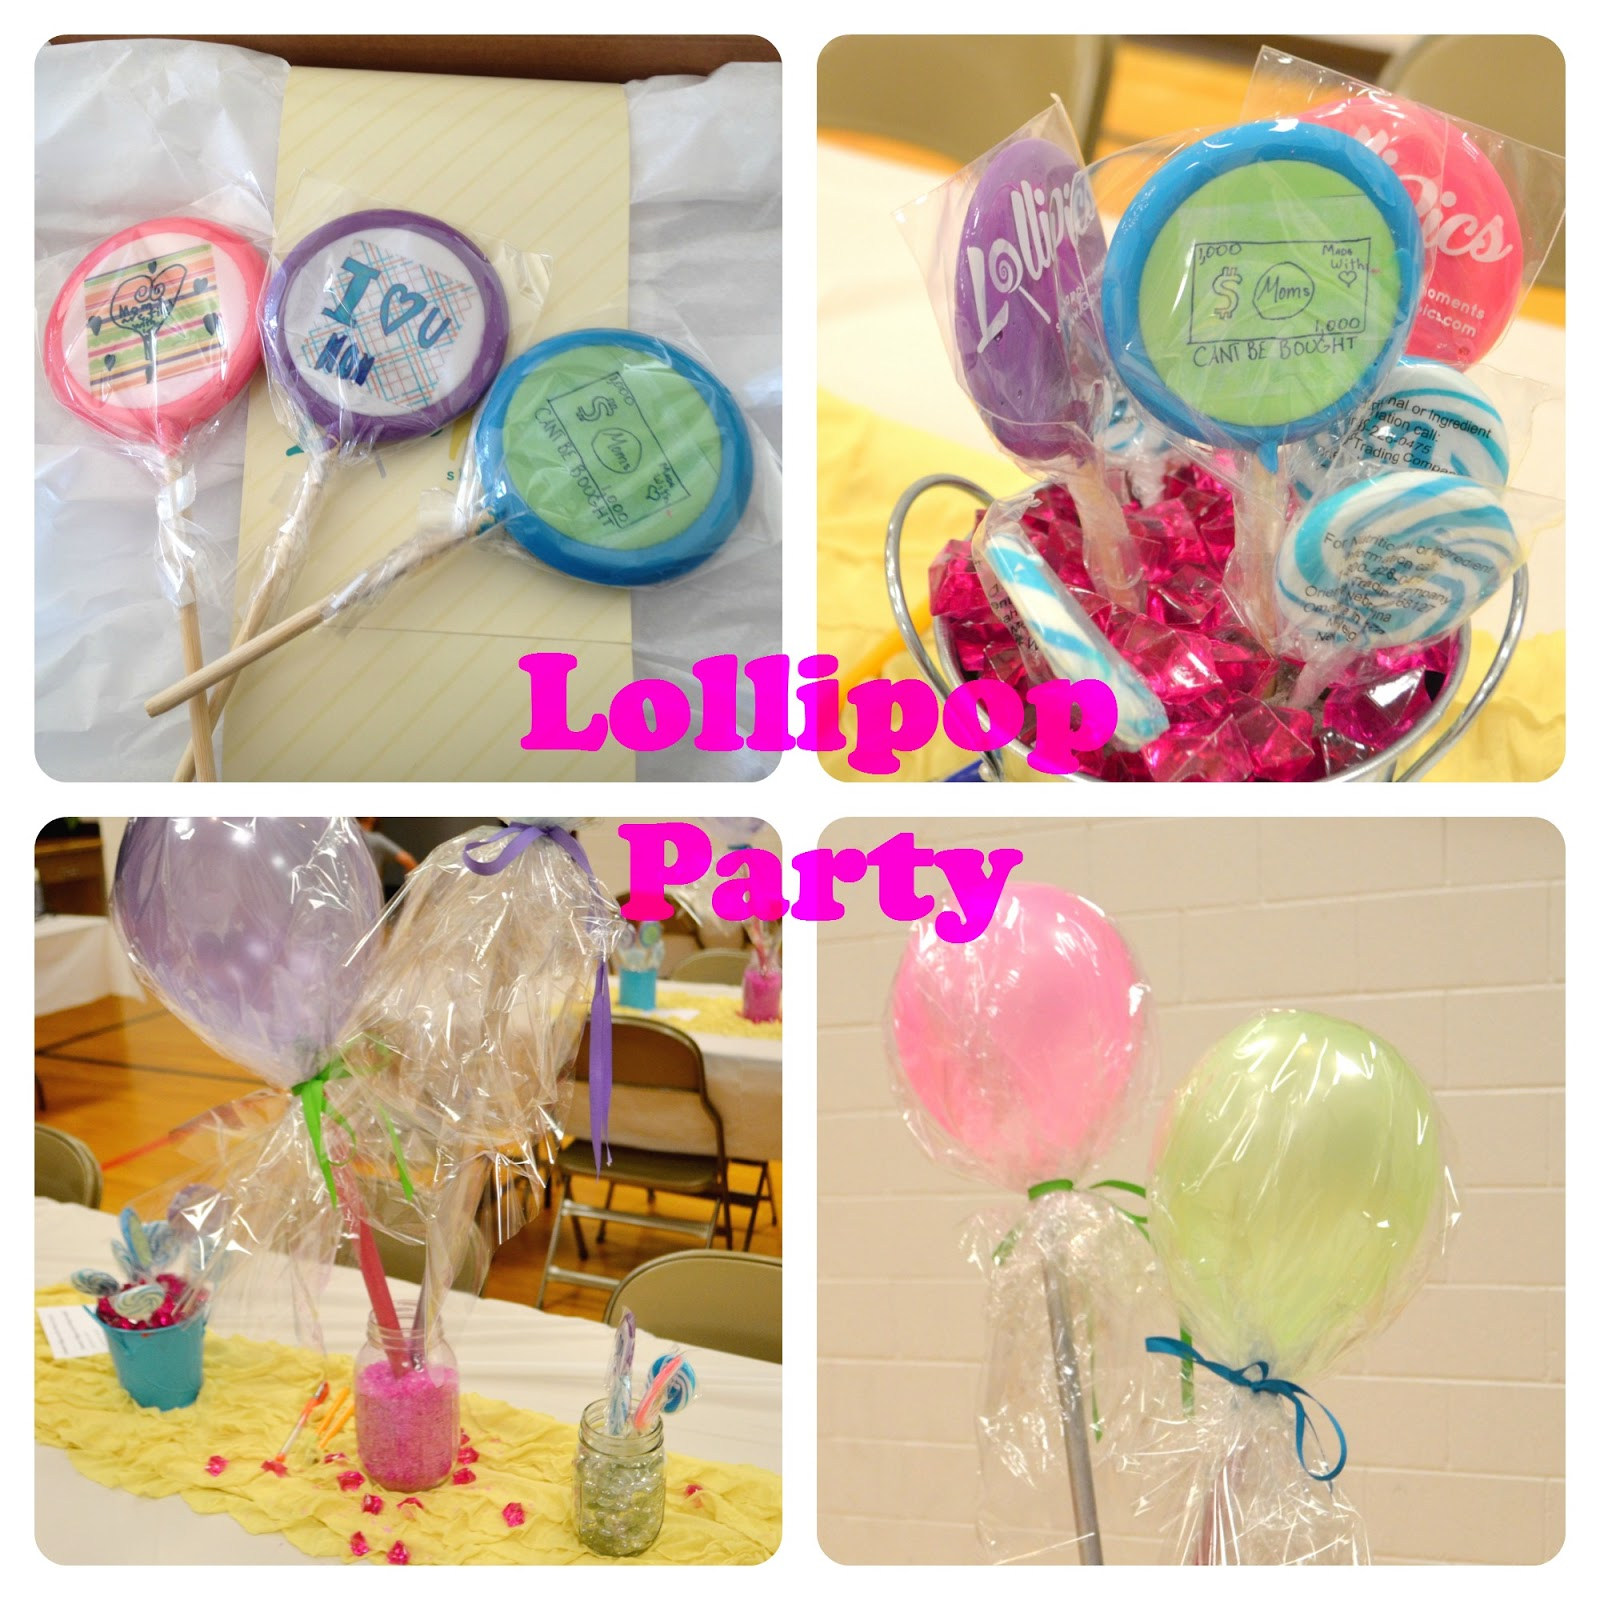 Lollipop Party with Lollipics